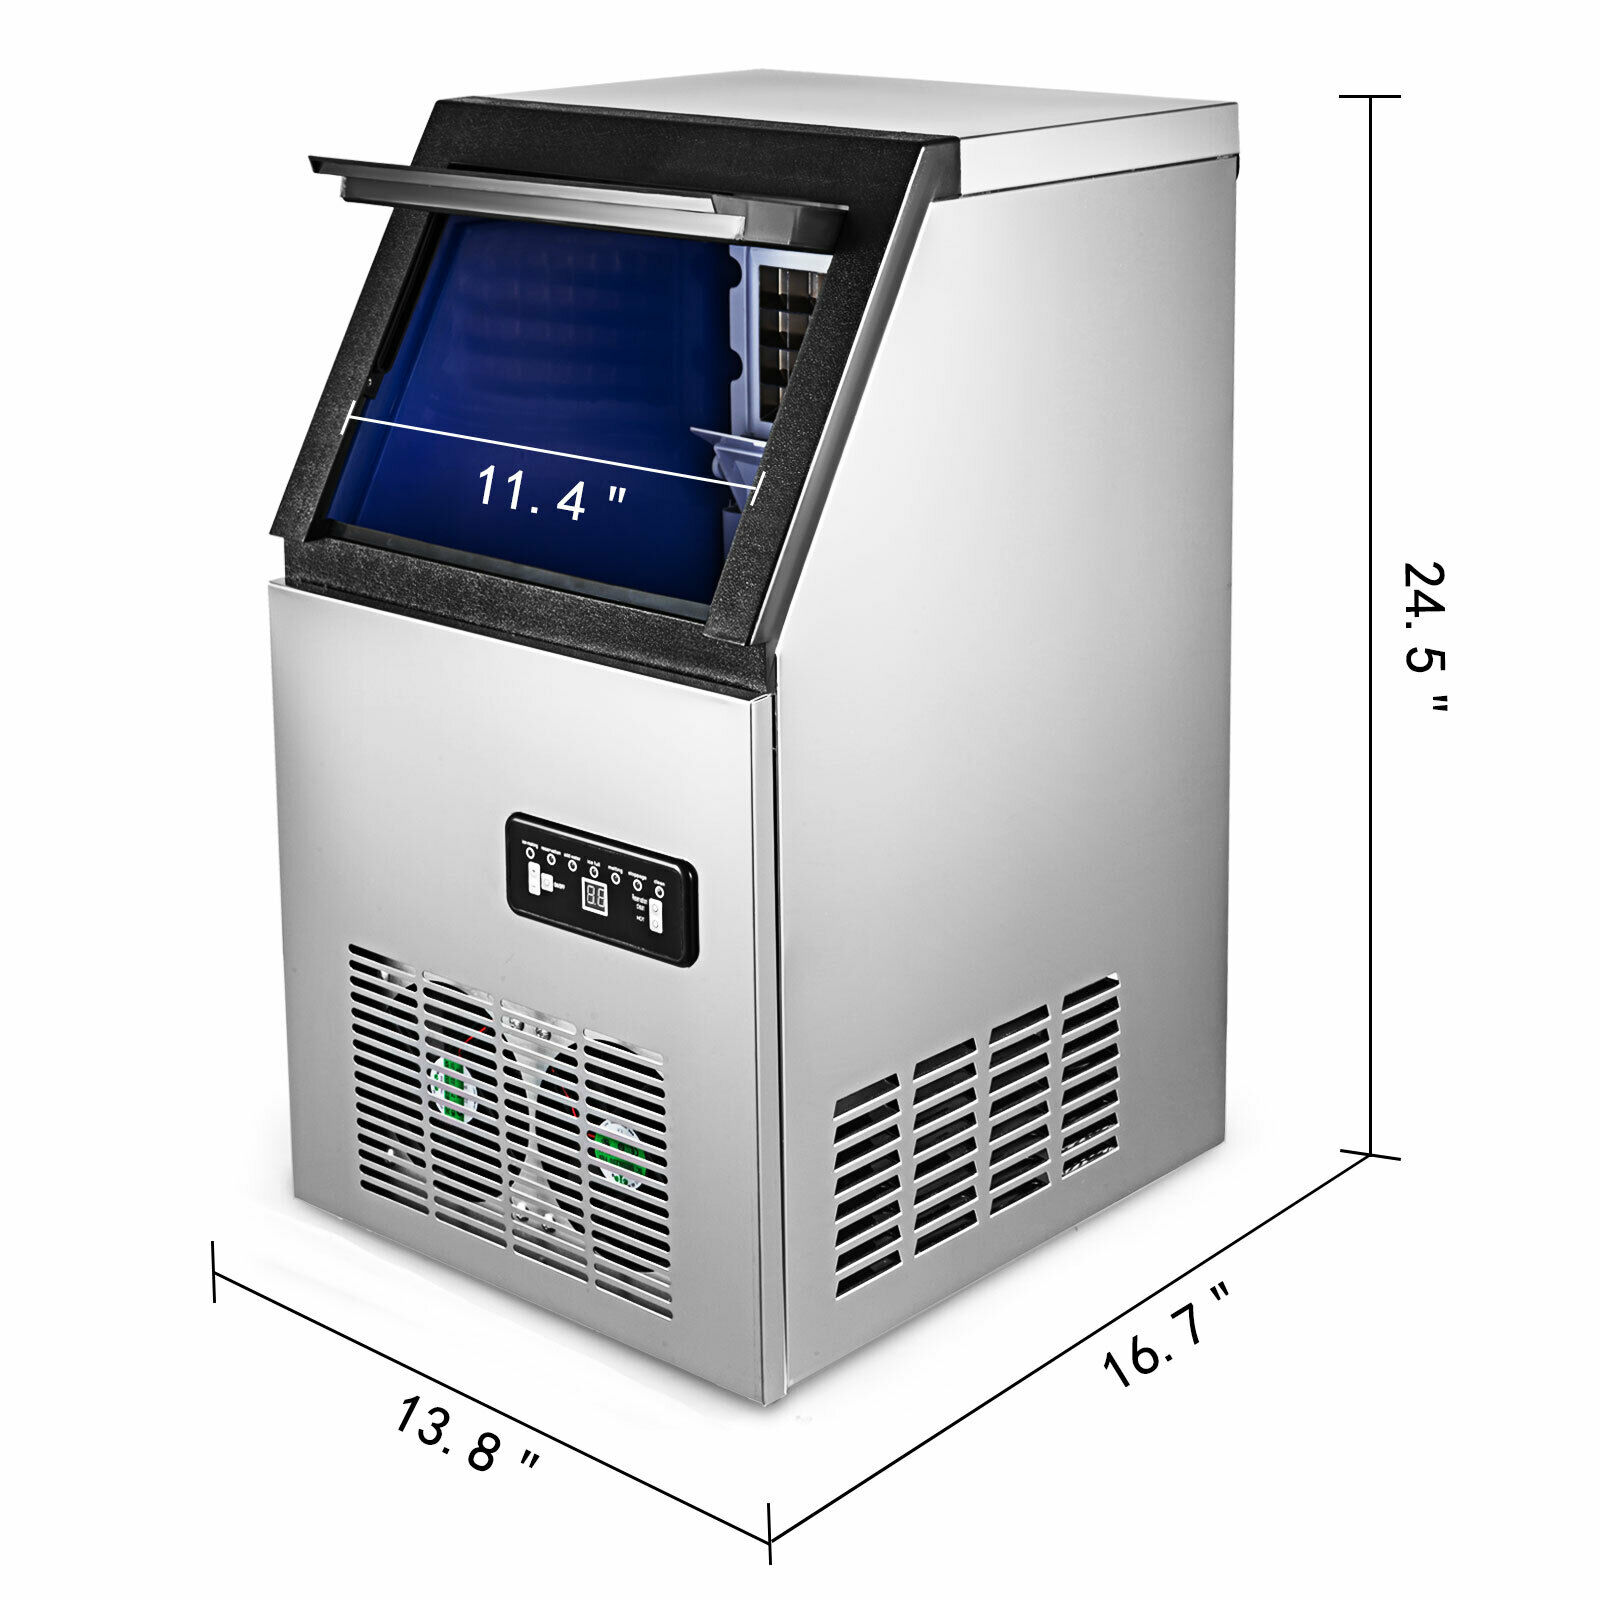 Us 88lb Built In Commercial Ice Maker Undercounter Freestand Ice Cube Machine Ice Making Machine Buy Commercial Ice Maker Ice Making Machine Ice Cube Machine Commercial Ice Cube Machine Product On Alibaba Com